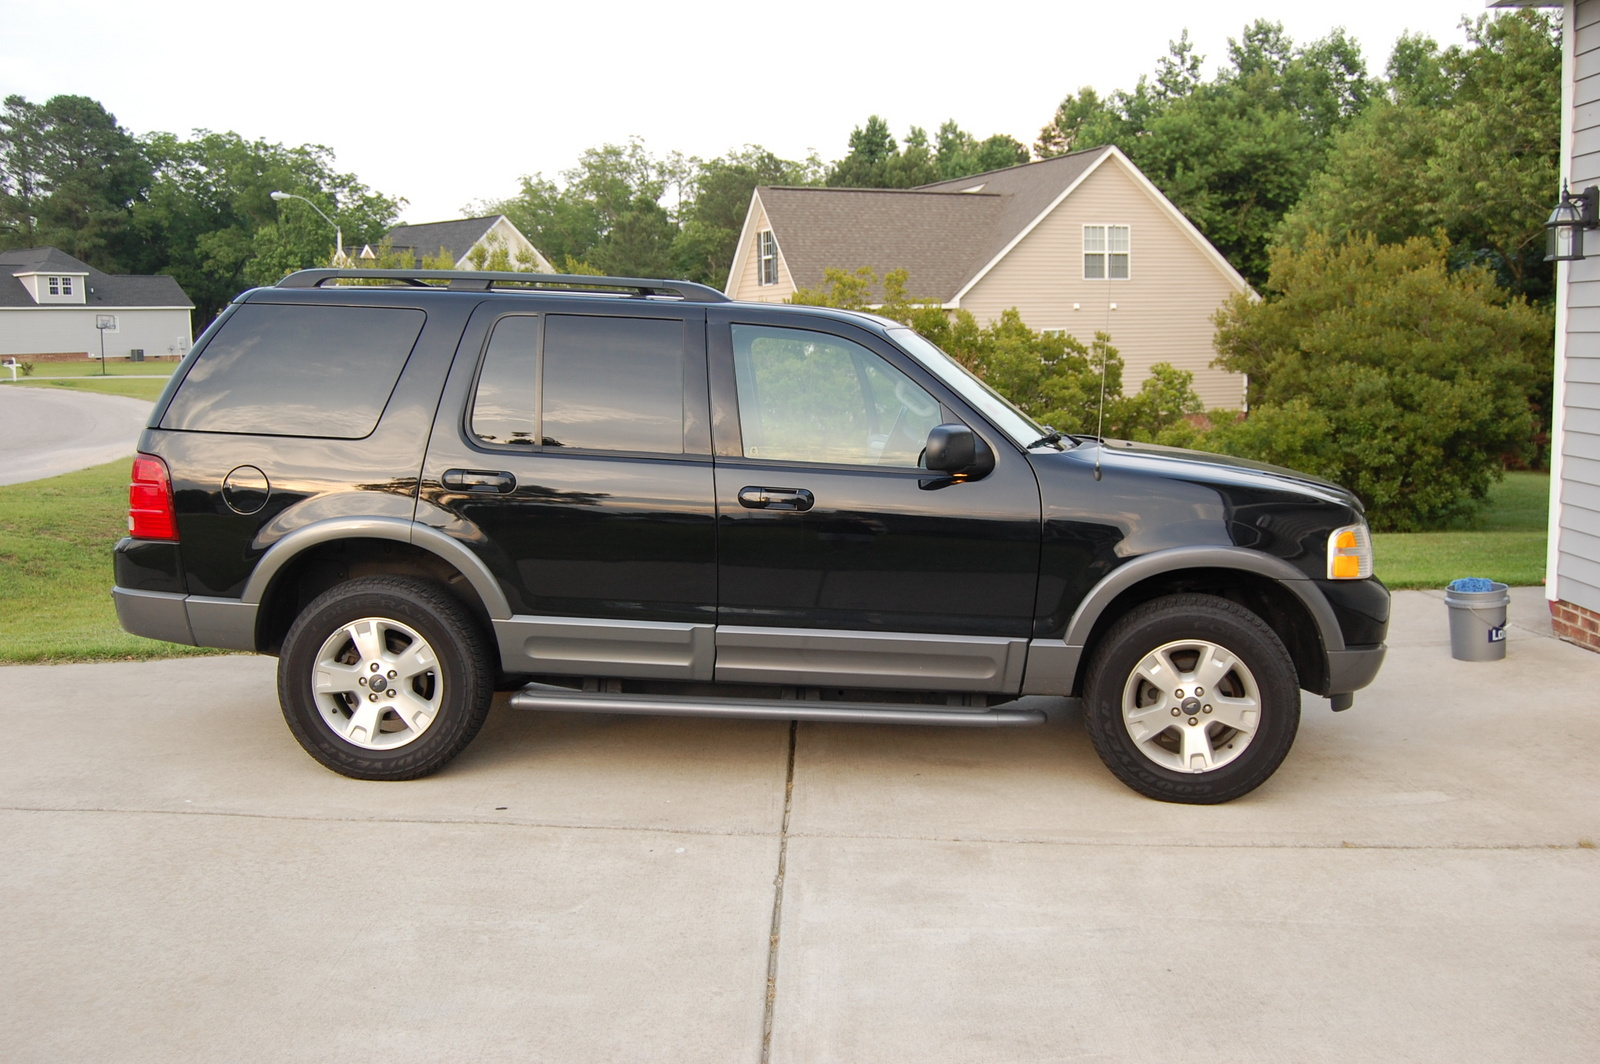 2003 ford explorer pictures cargurus. Black Bedroom Furniture Sets. Home Design Ideas